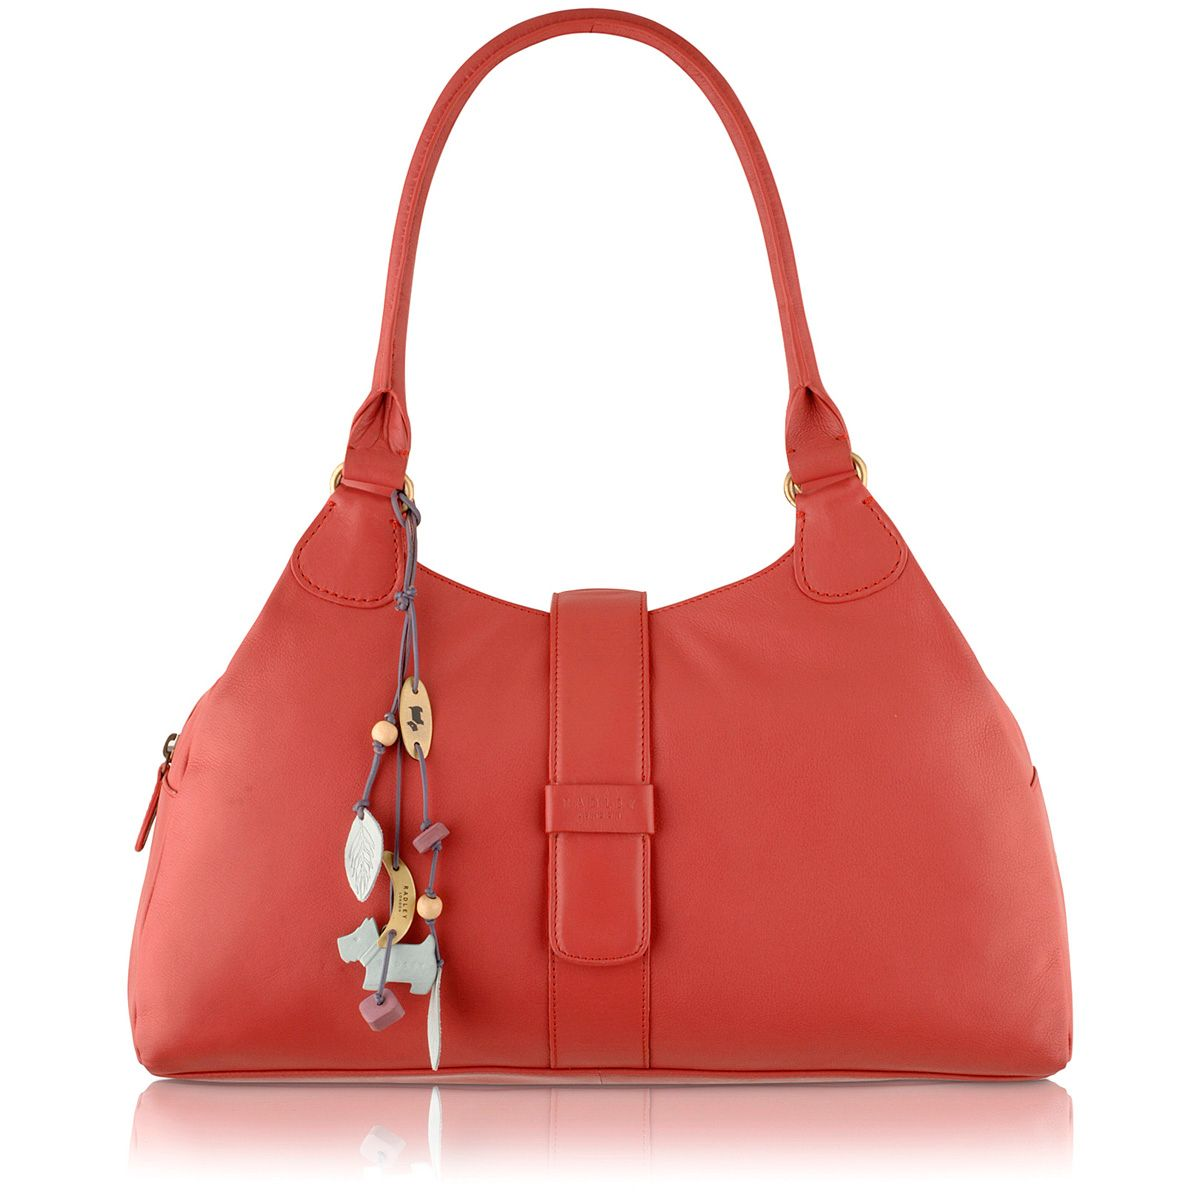 Danby pink large leather zip top tote bag